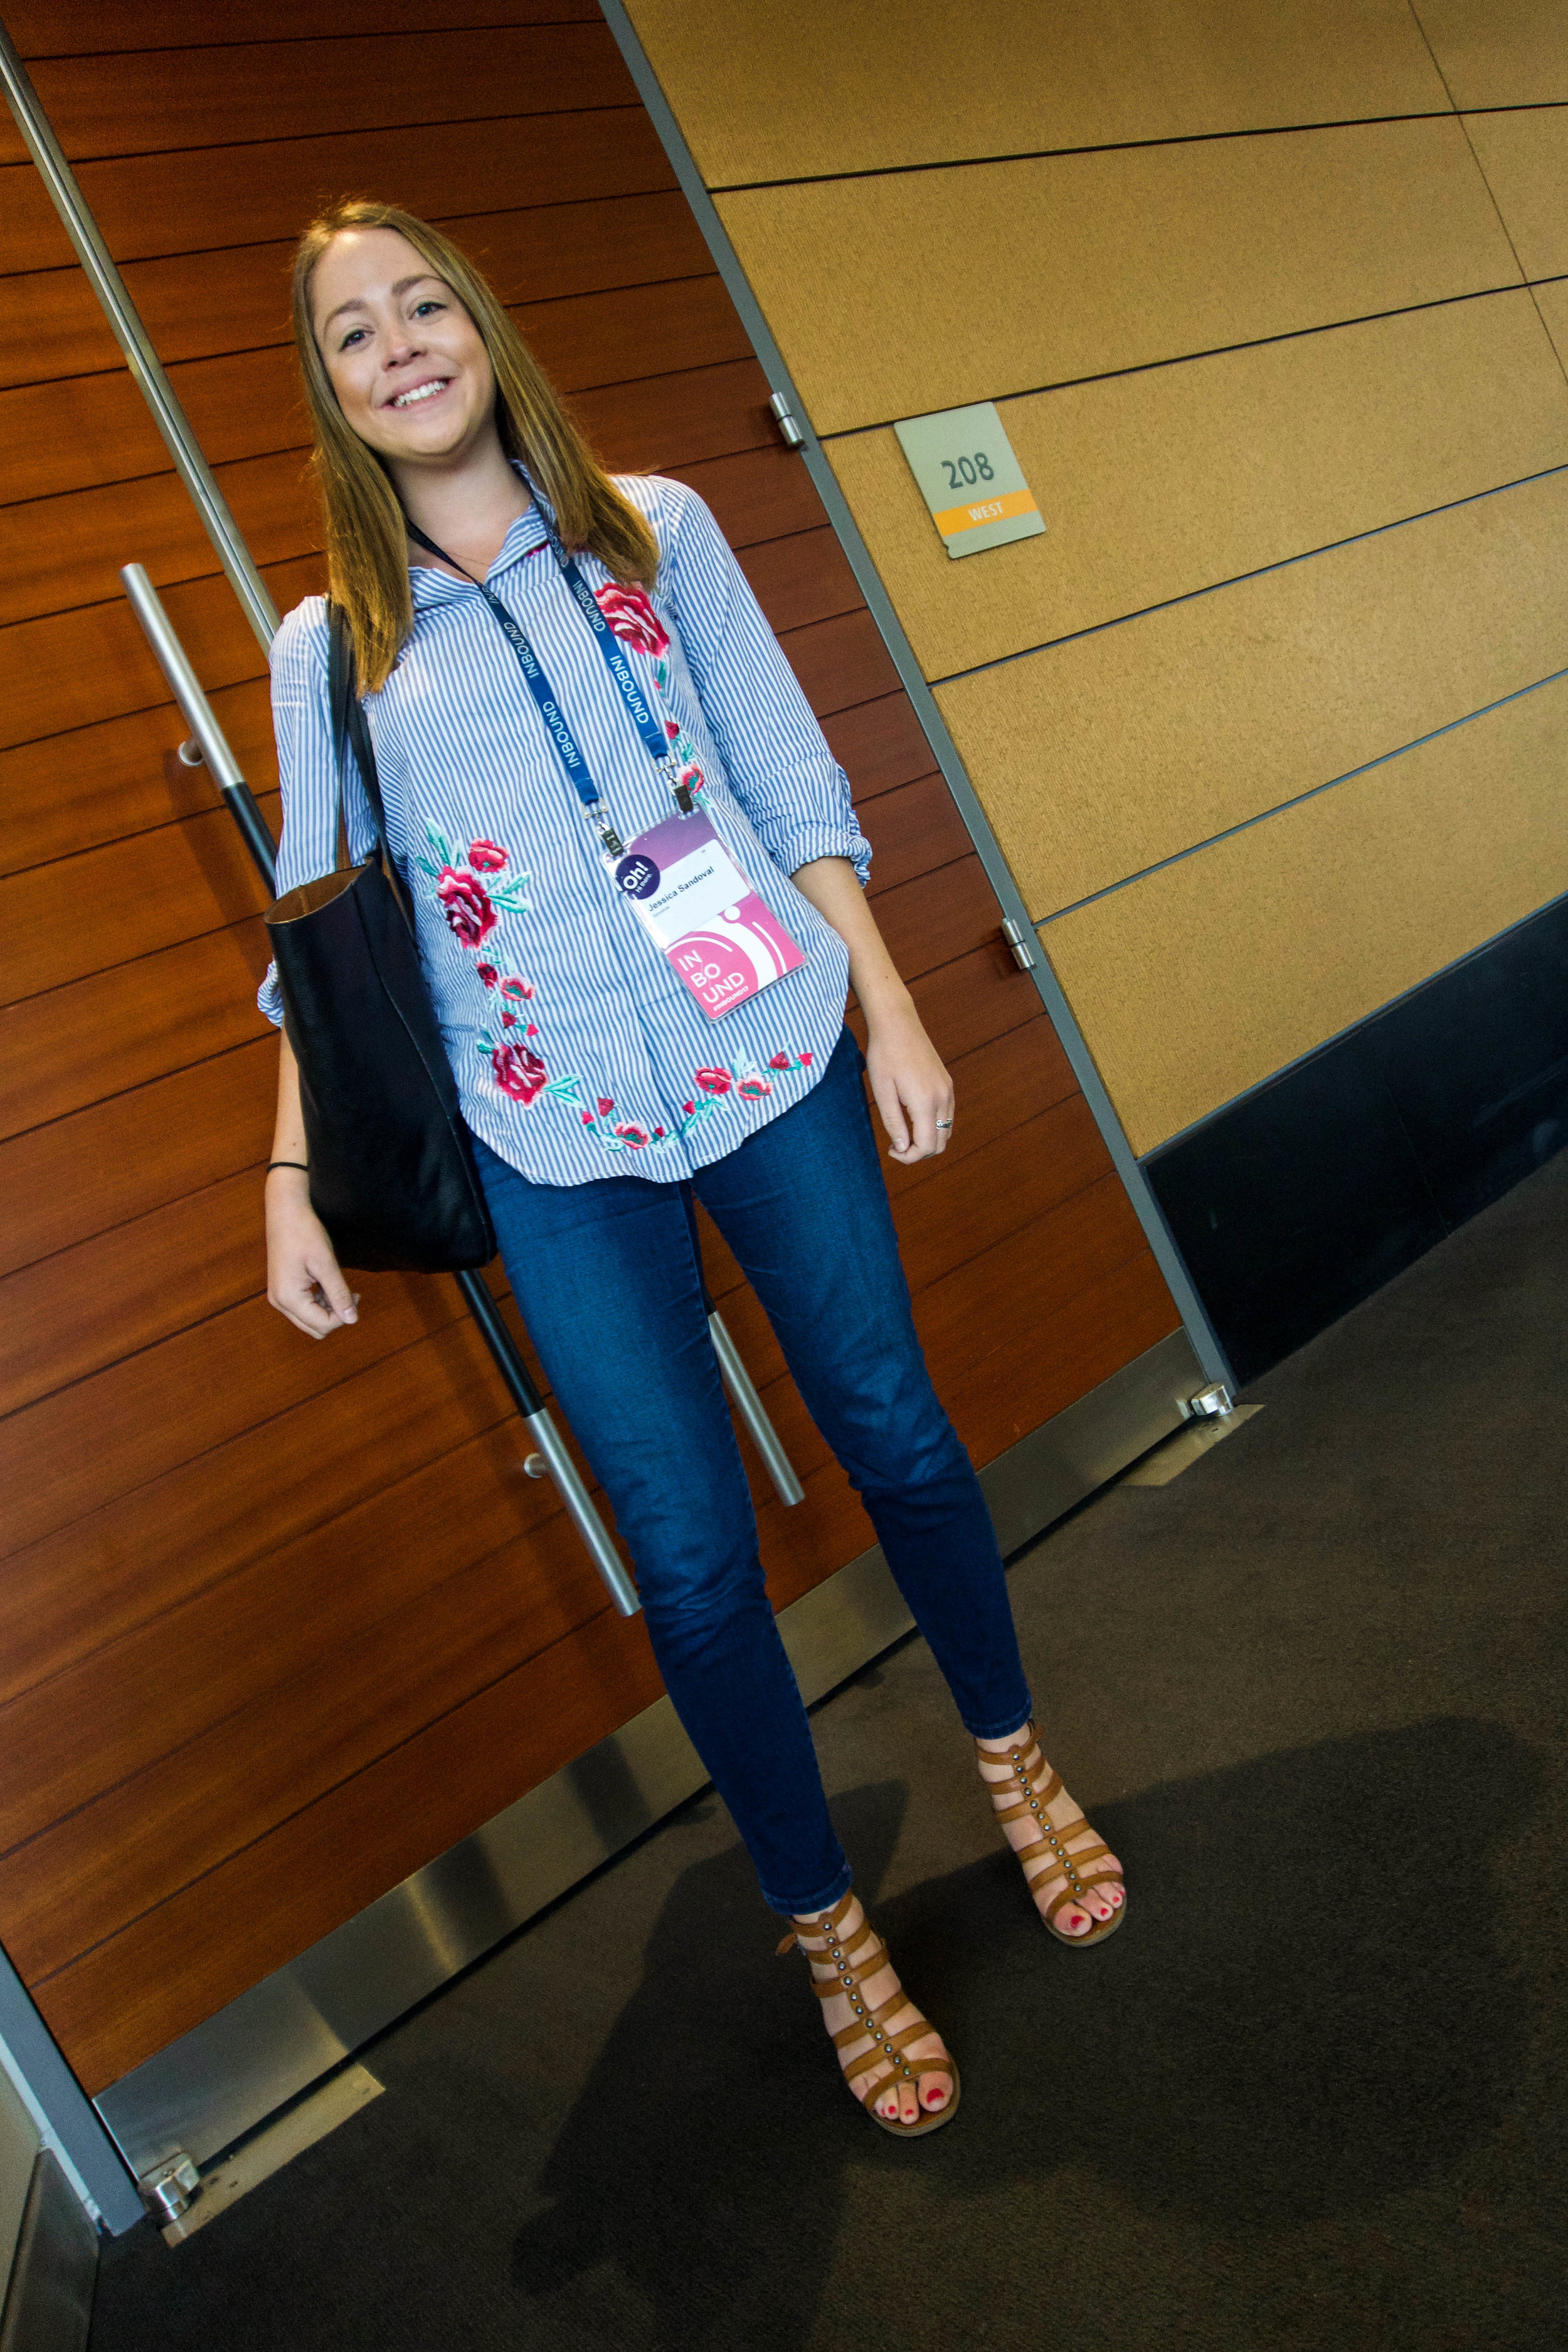 Hubspot Inbound marketing conference - outfit - what to wear - boston convention center - jeans - sandals